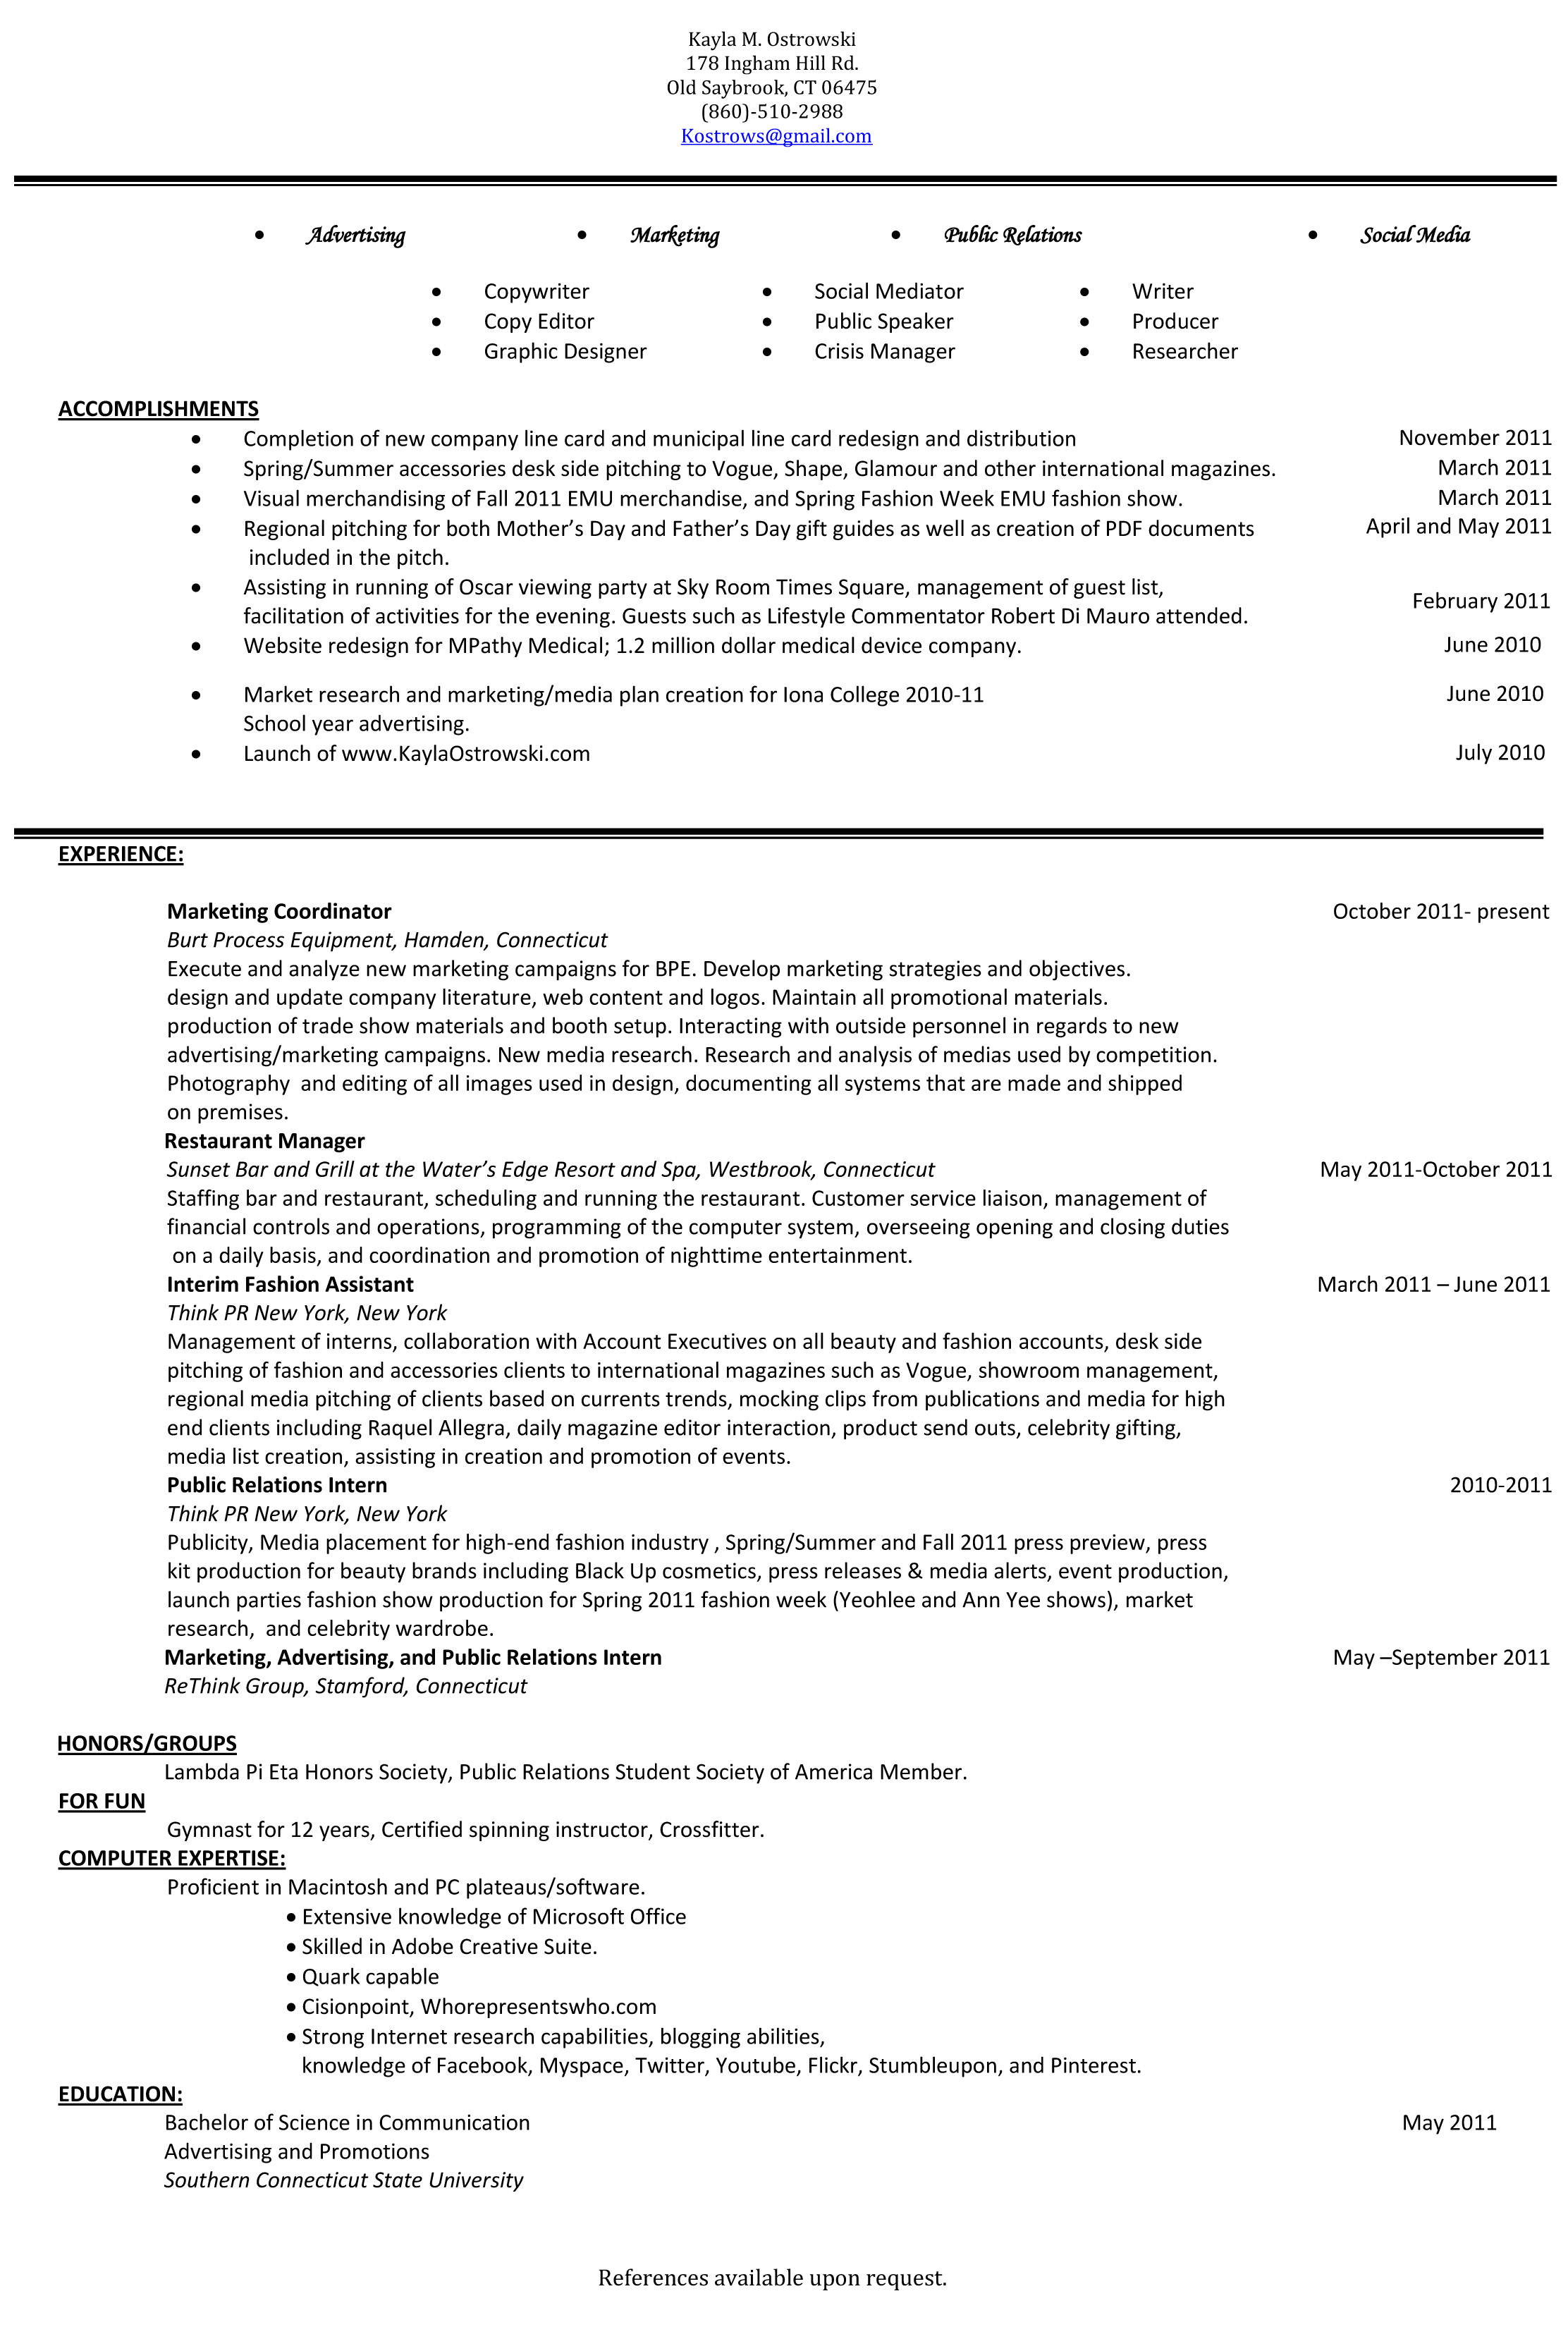 current resume mar adv soc med pr